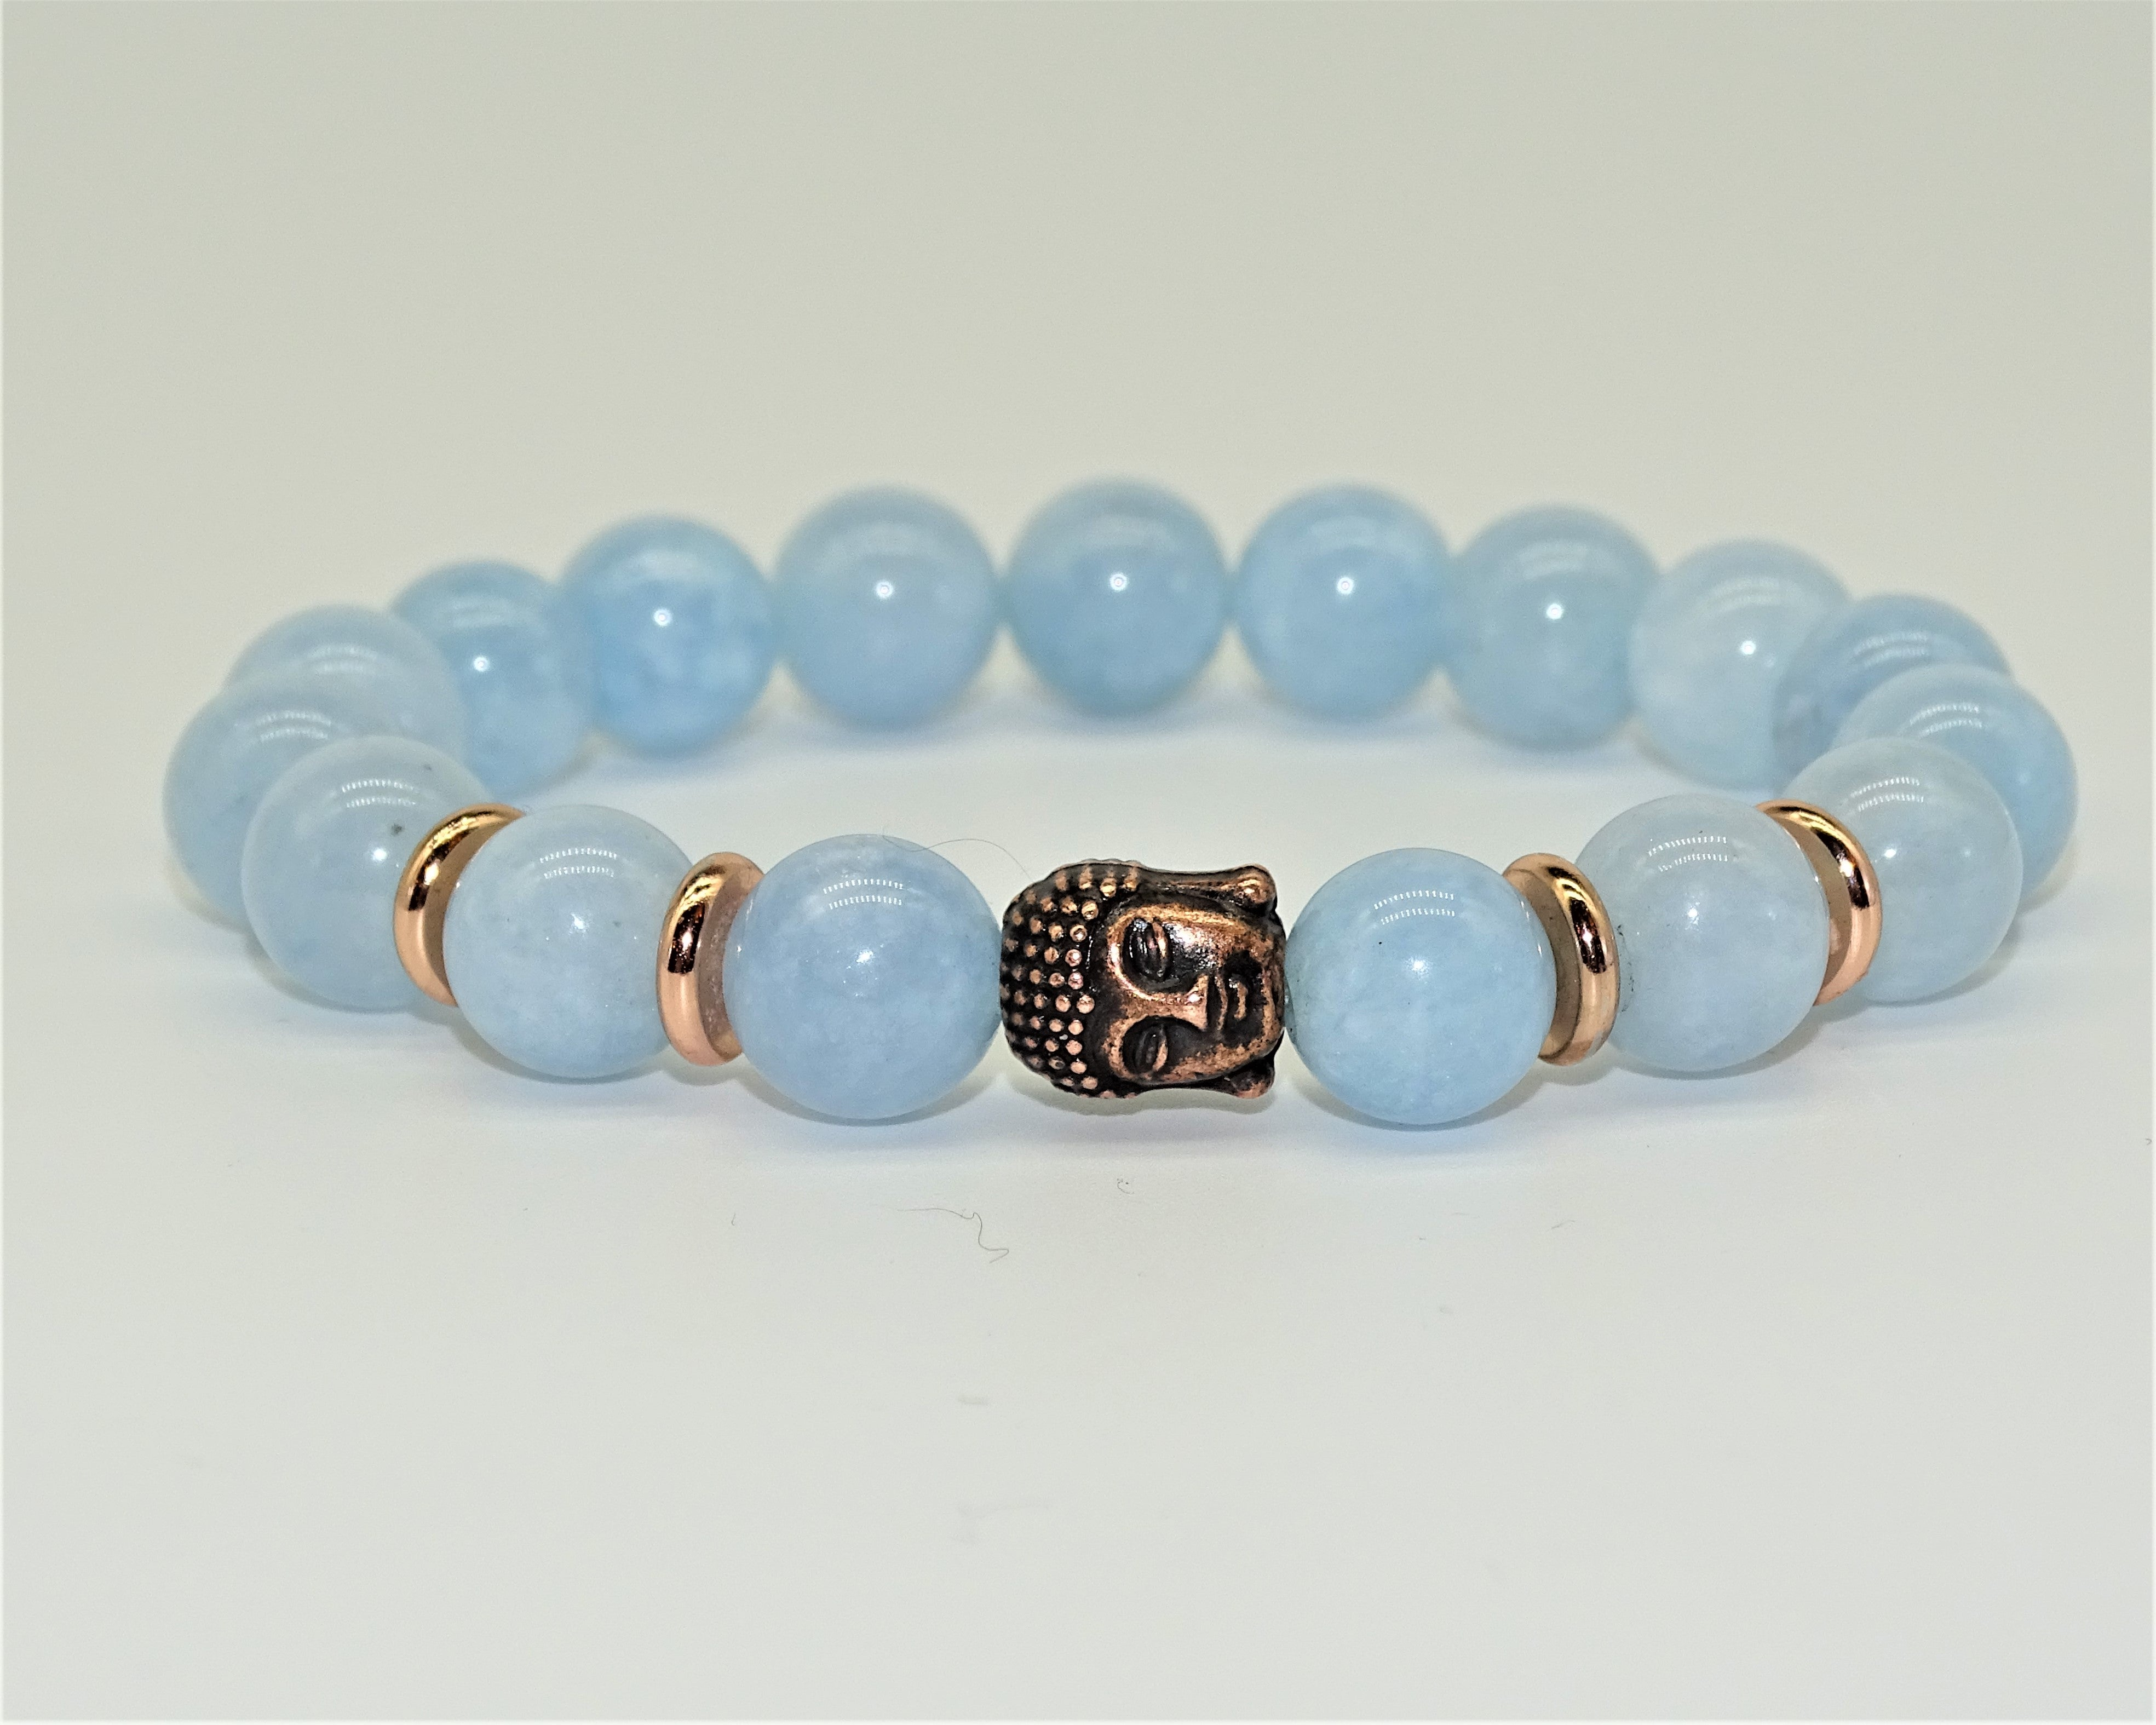 Aquamarine - Courage, Calm and Self-Expression